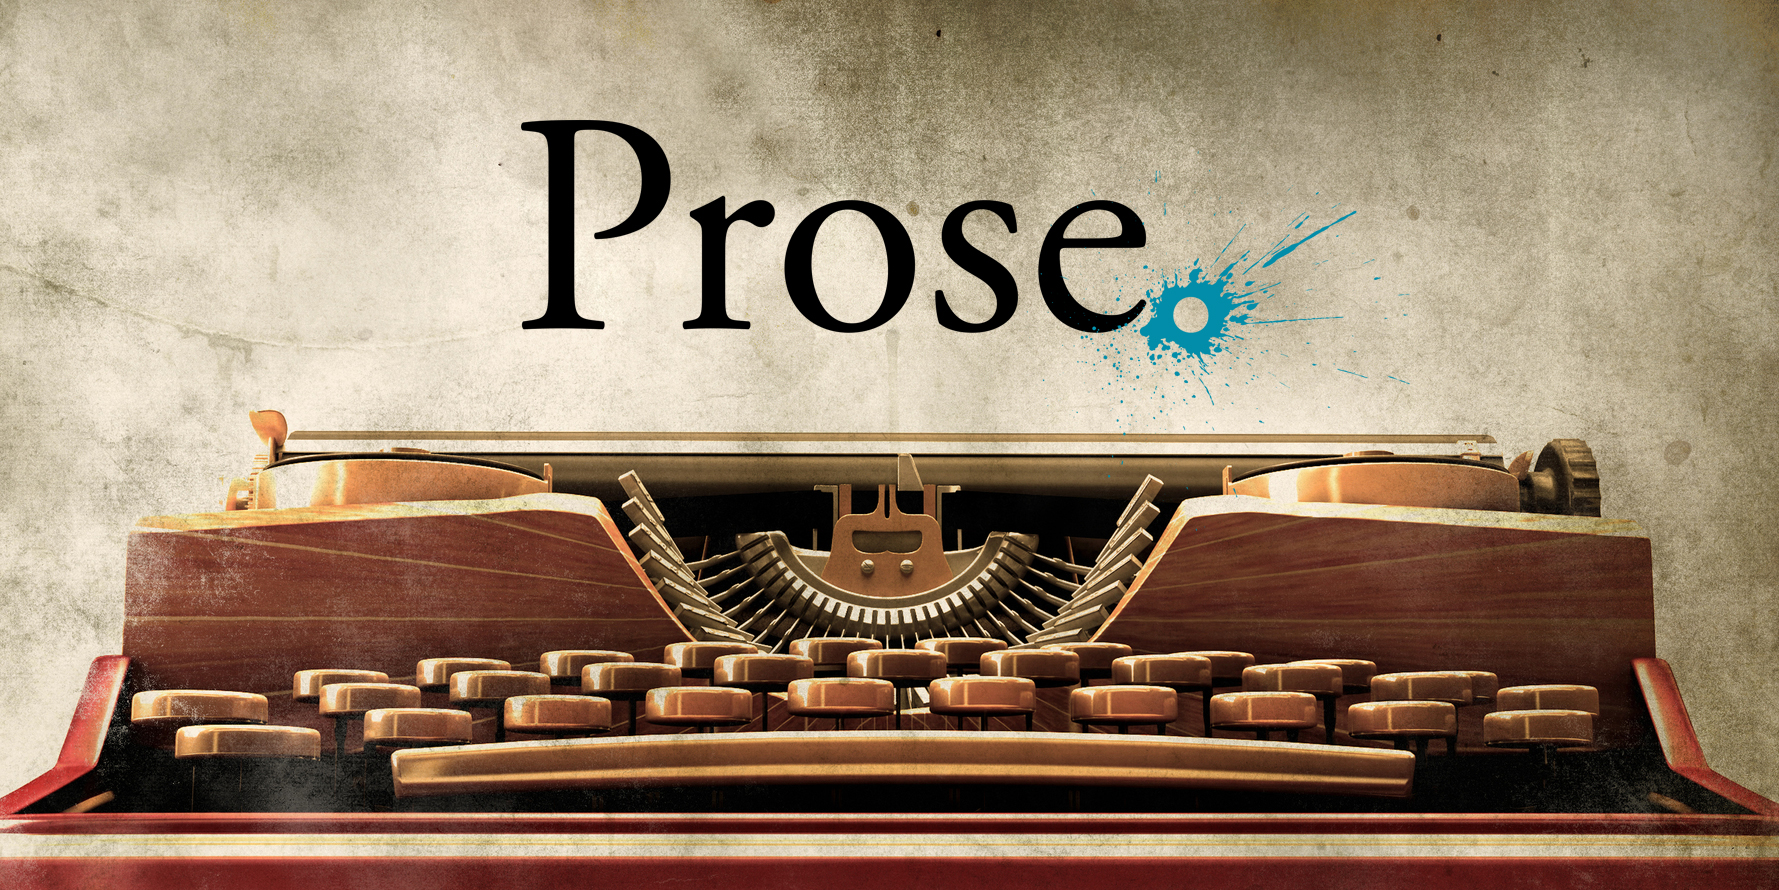 Prose: a selection of sites